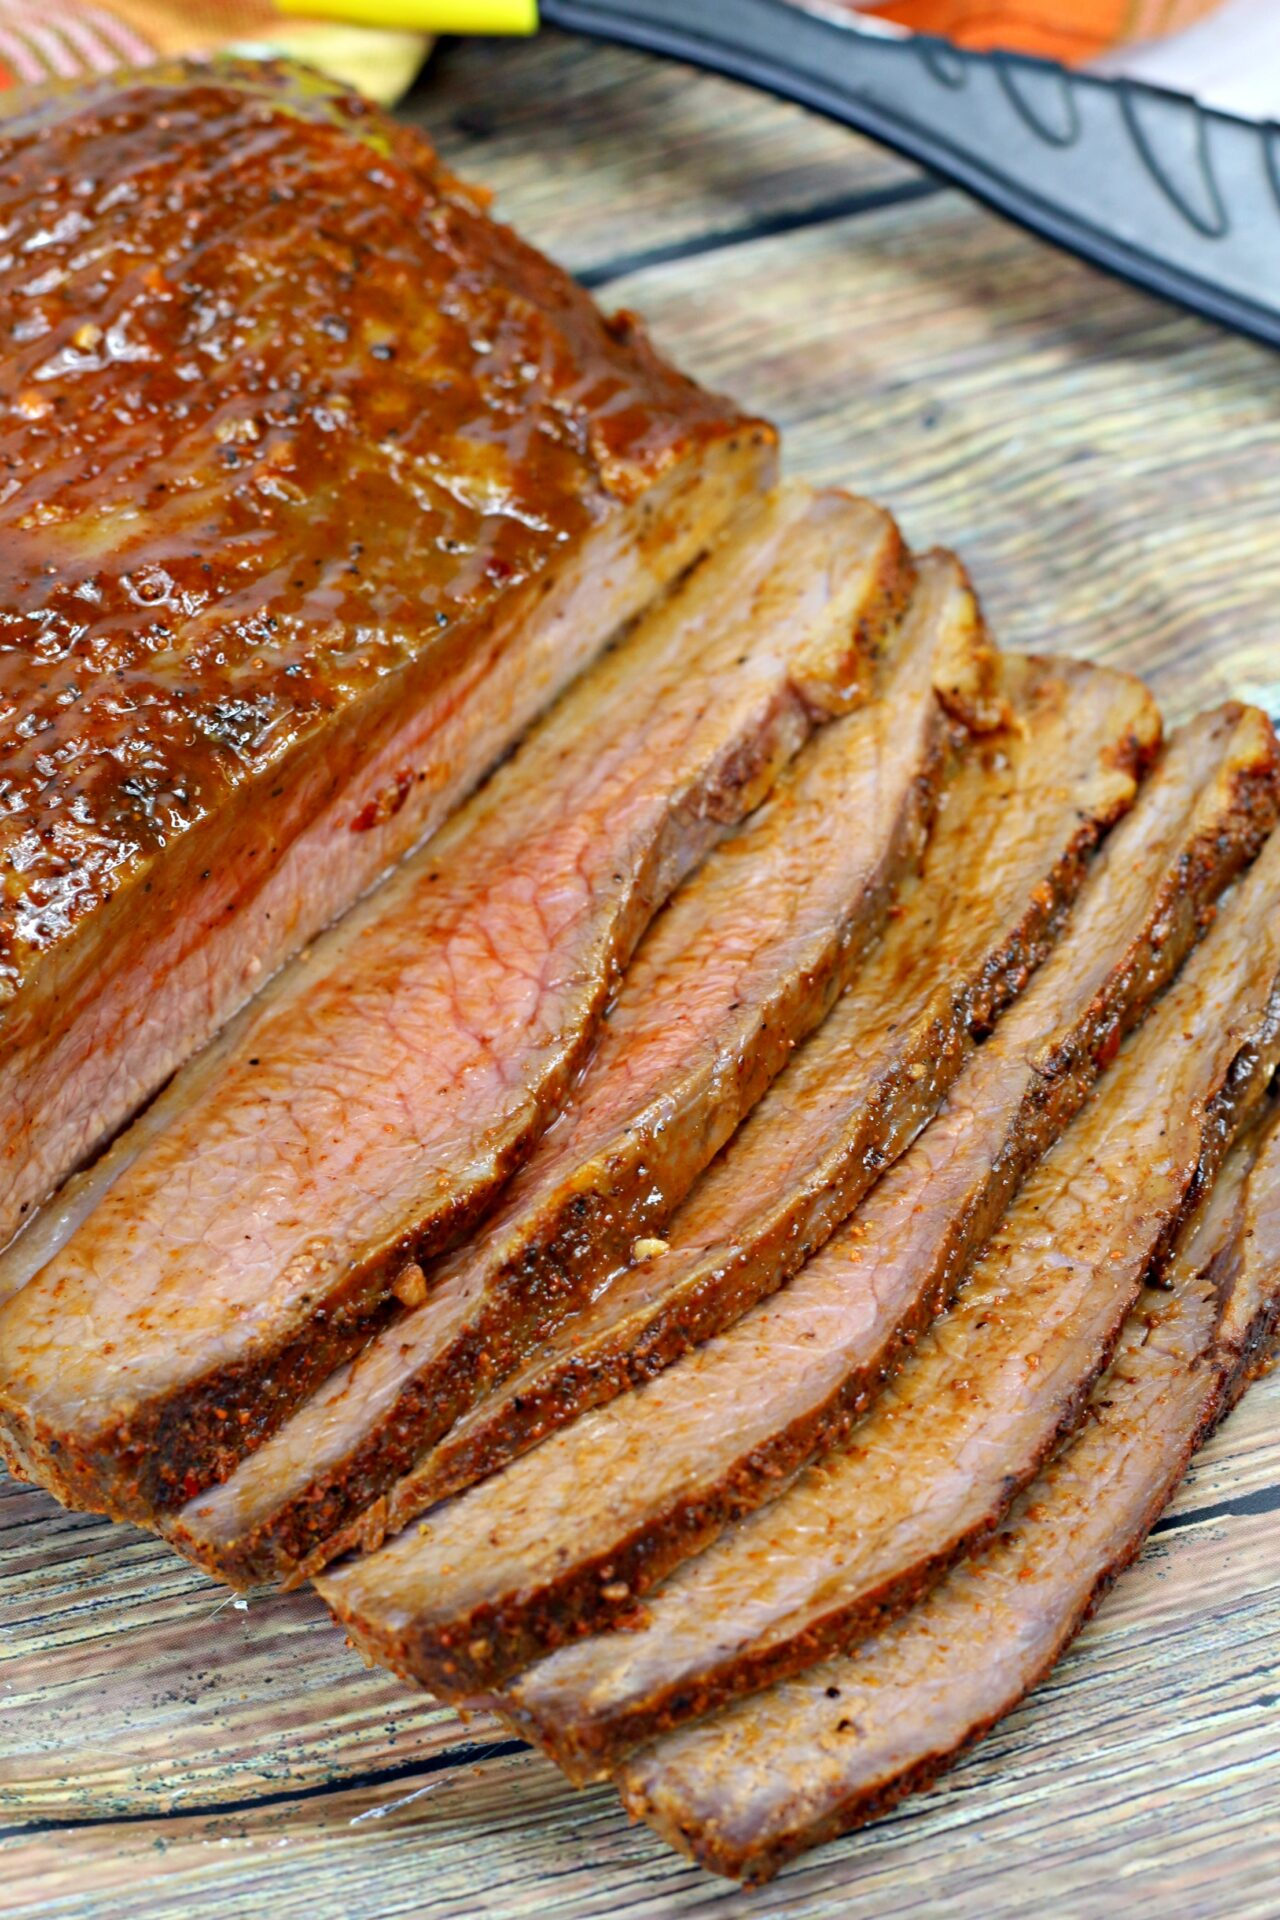 Texas Oven-baked​ Brisket